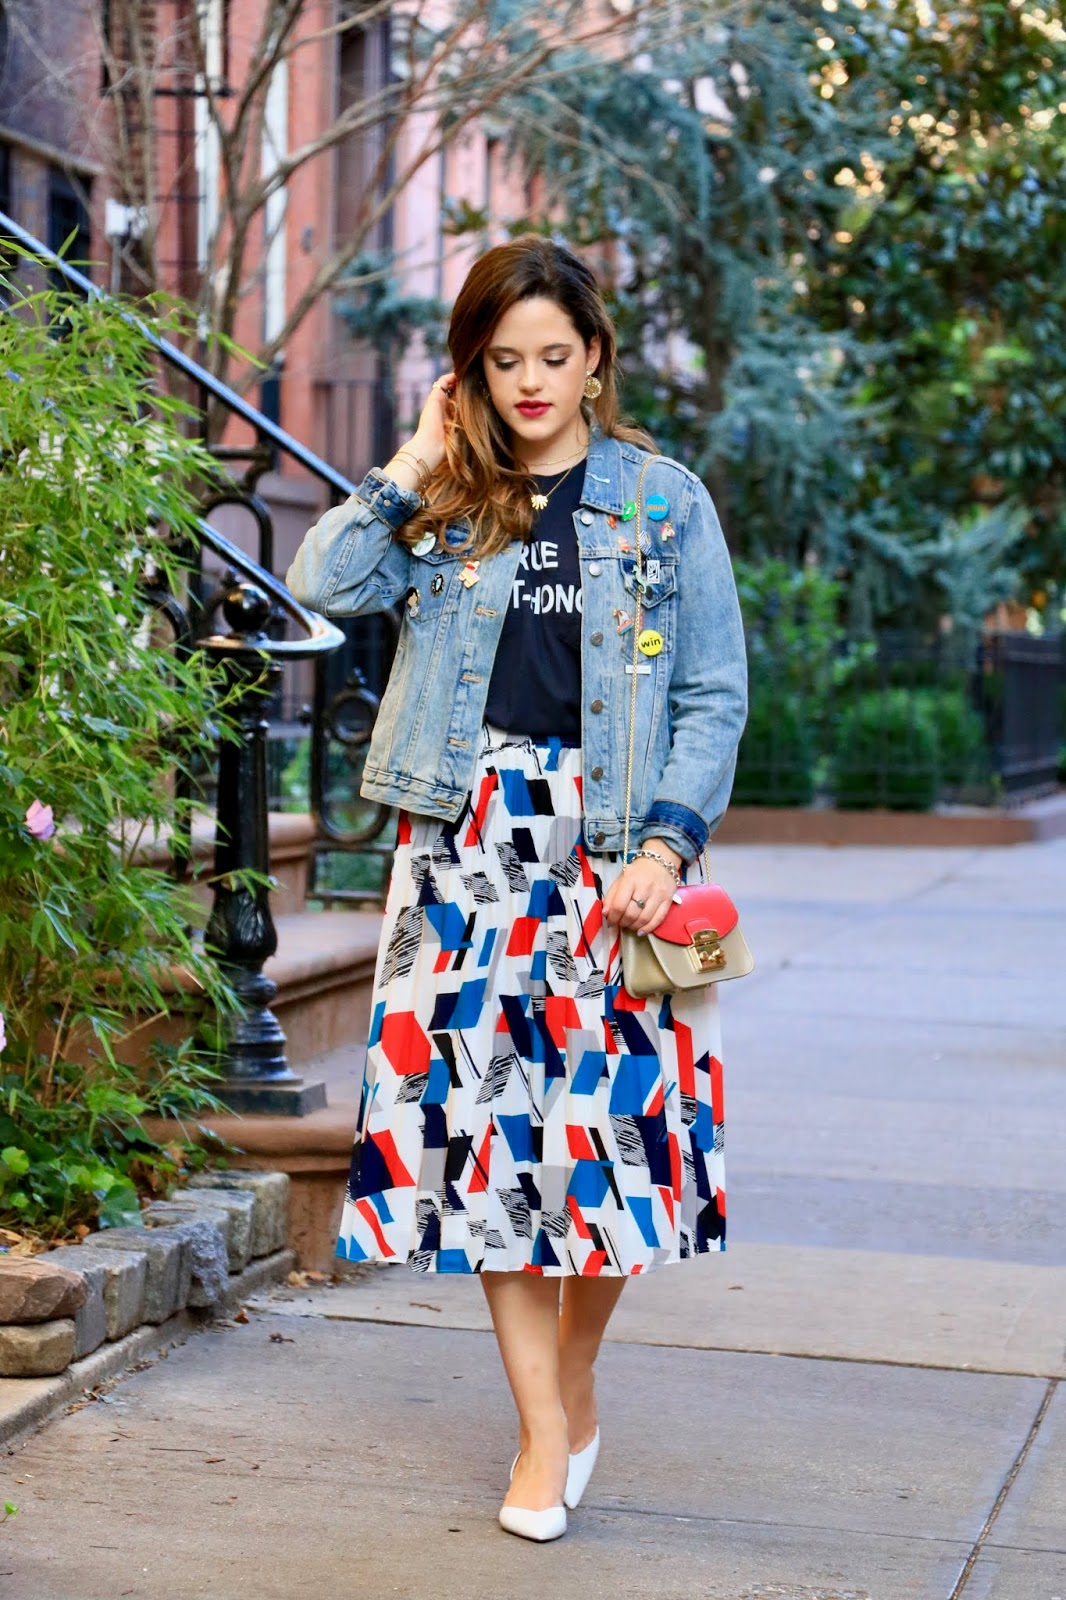 Nyc fashion blogger Kathleen Harper wearing a denim jacket with pins